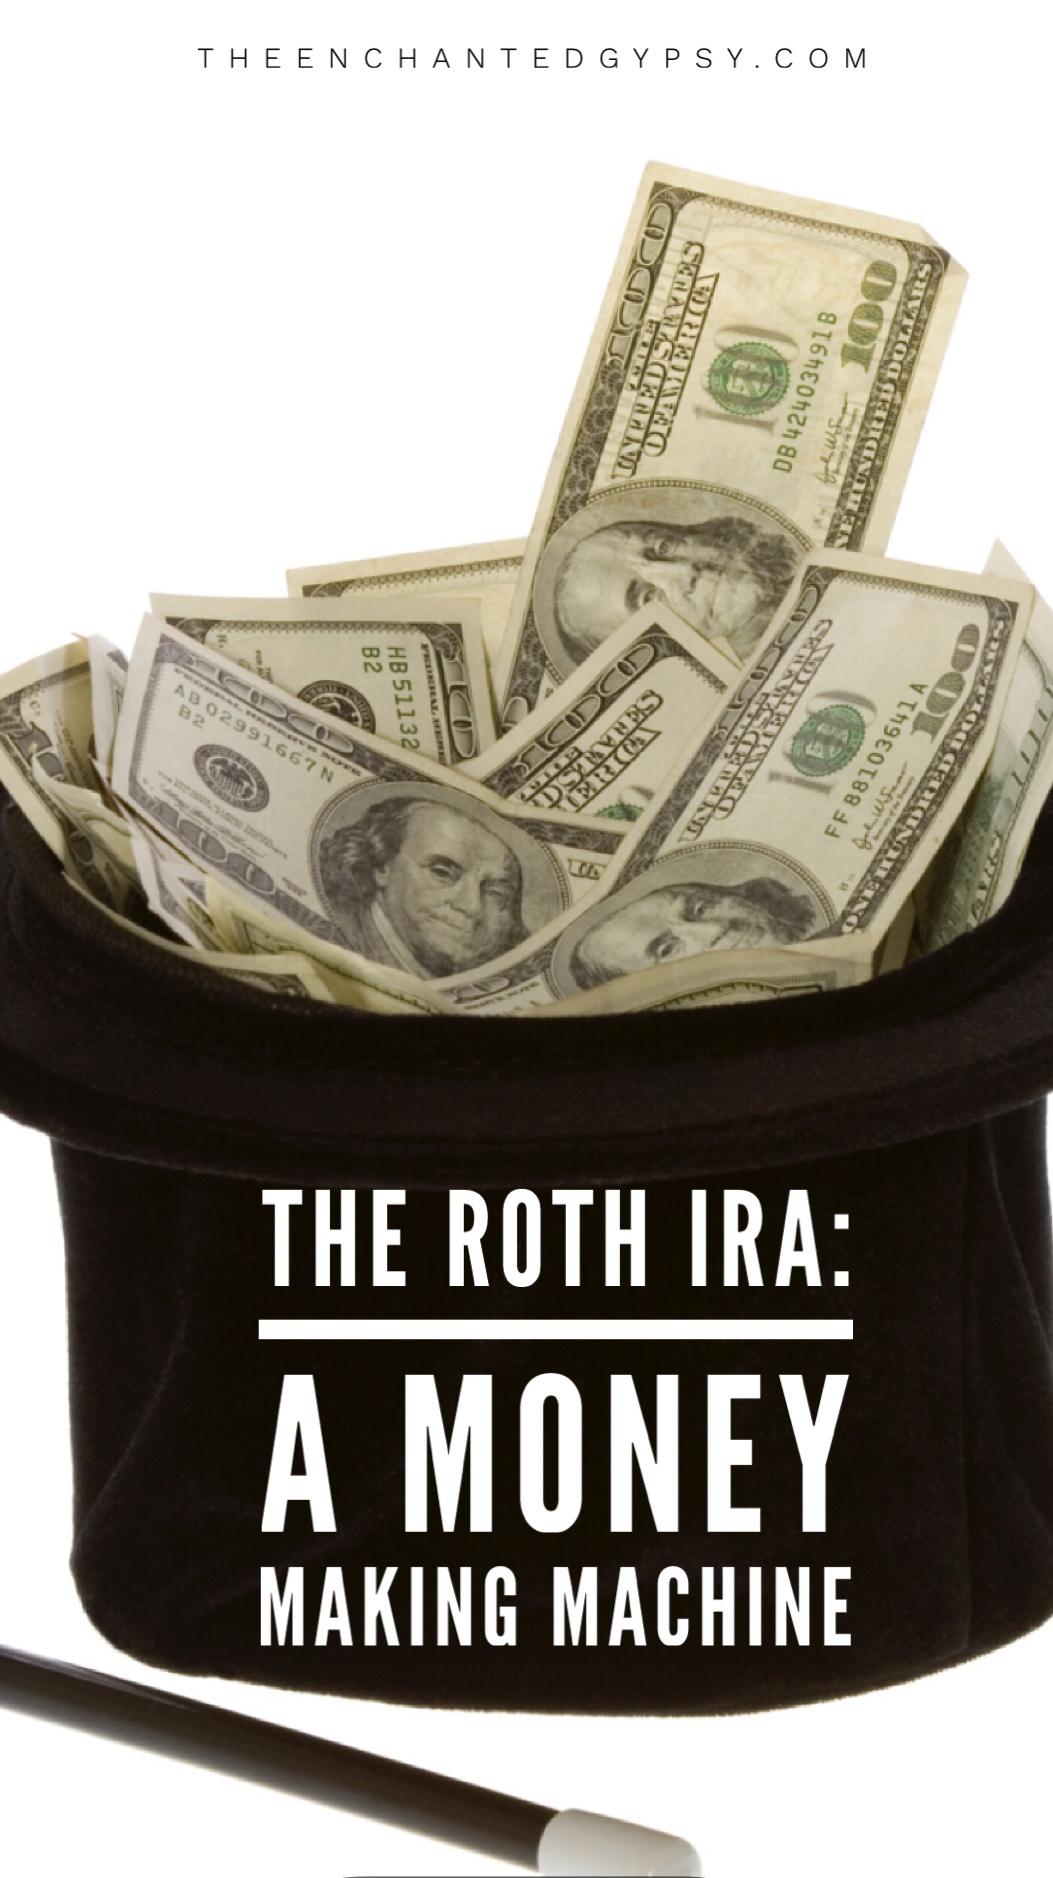 Everything you need to know about the Roth IRA and why you should have one! The Roth IRA: A Money Making Machine www.TheEnchantedGypsy.com